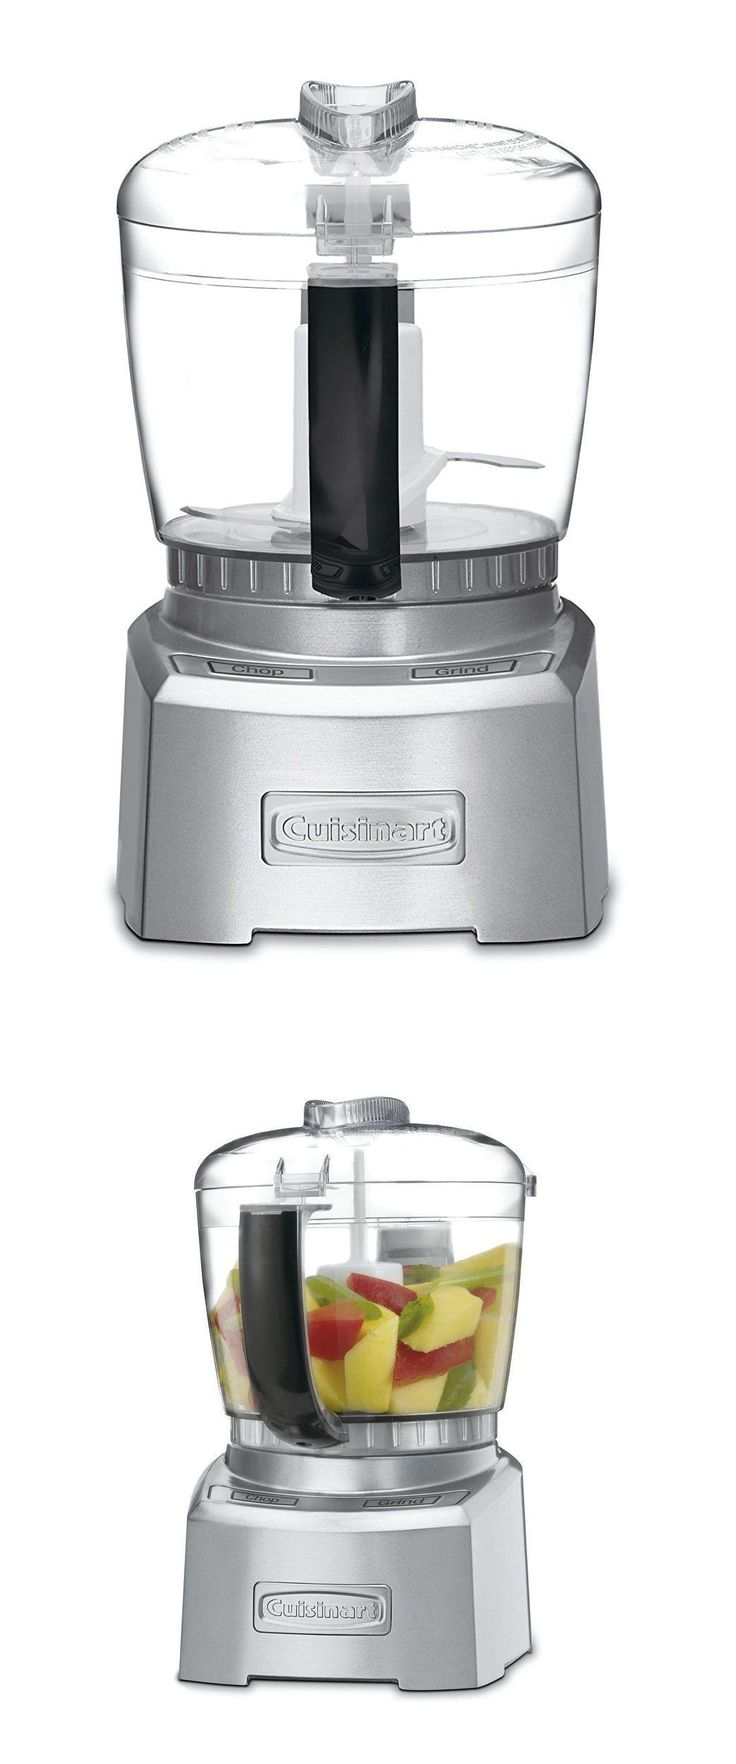 attractive Kitchen Appliances Buy Now Pay Later #4: Small Kitchen Appliances: Cuisinart Elite Collection 4 Cup Chopper / Grinder Nib Blender Processor Kitchen